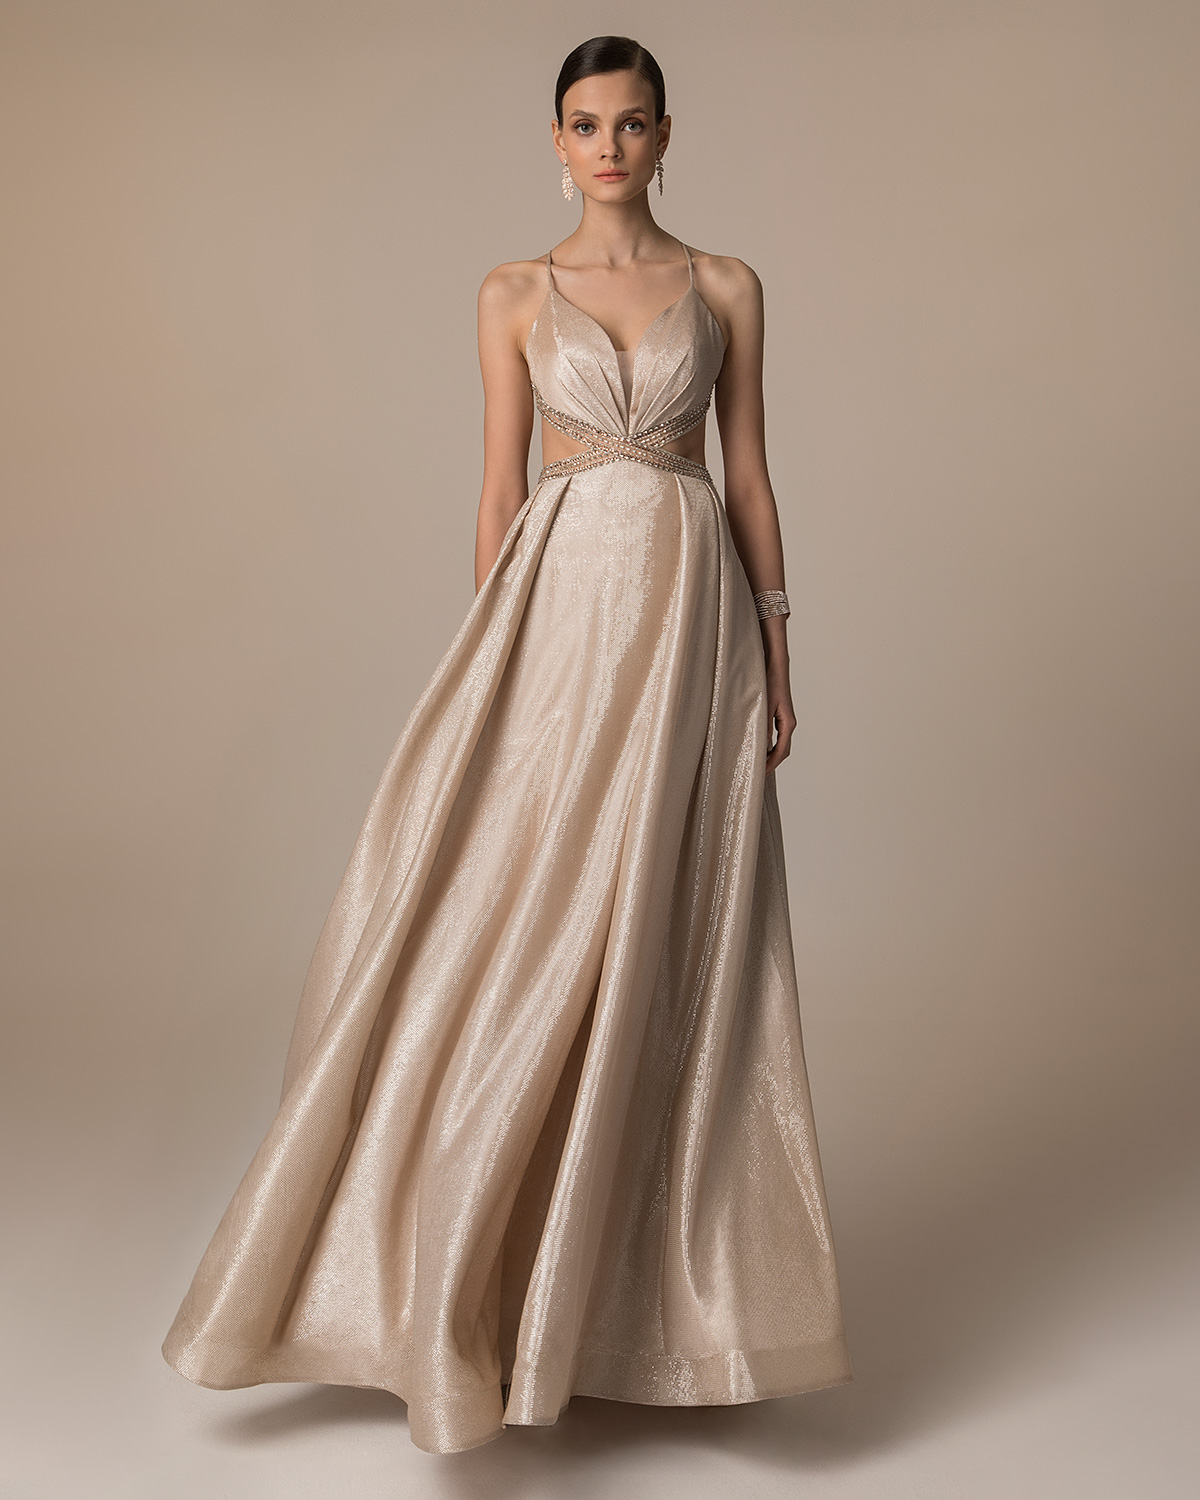 Evening Dresses / Long evening dress with shining fabric and beaded top and straps